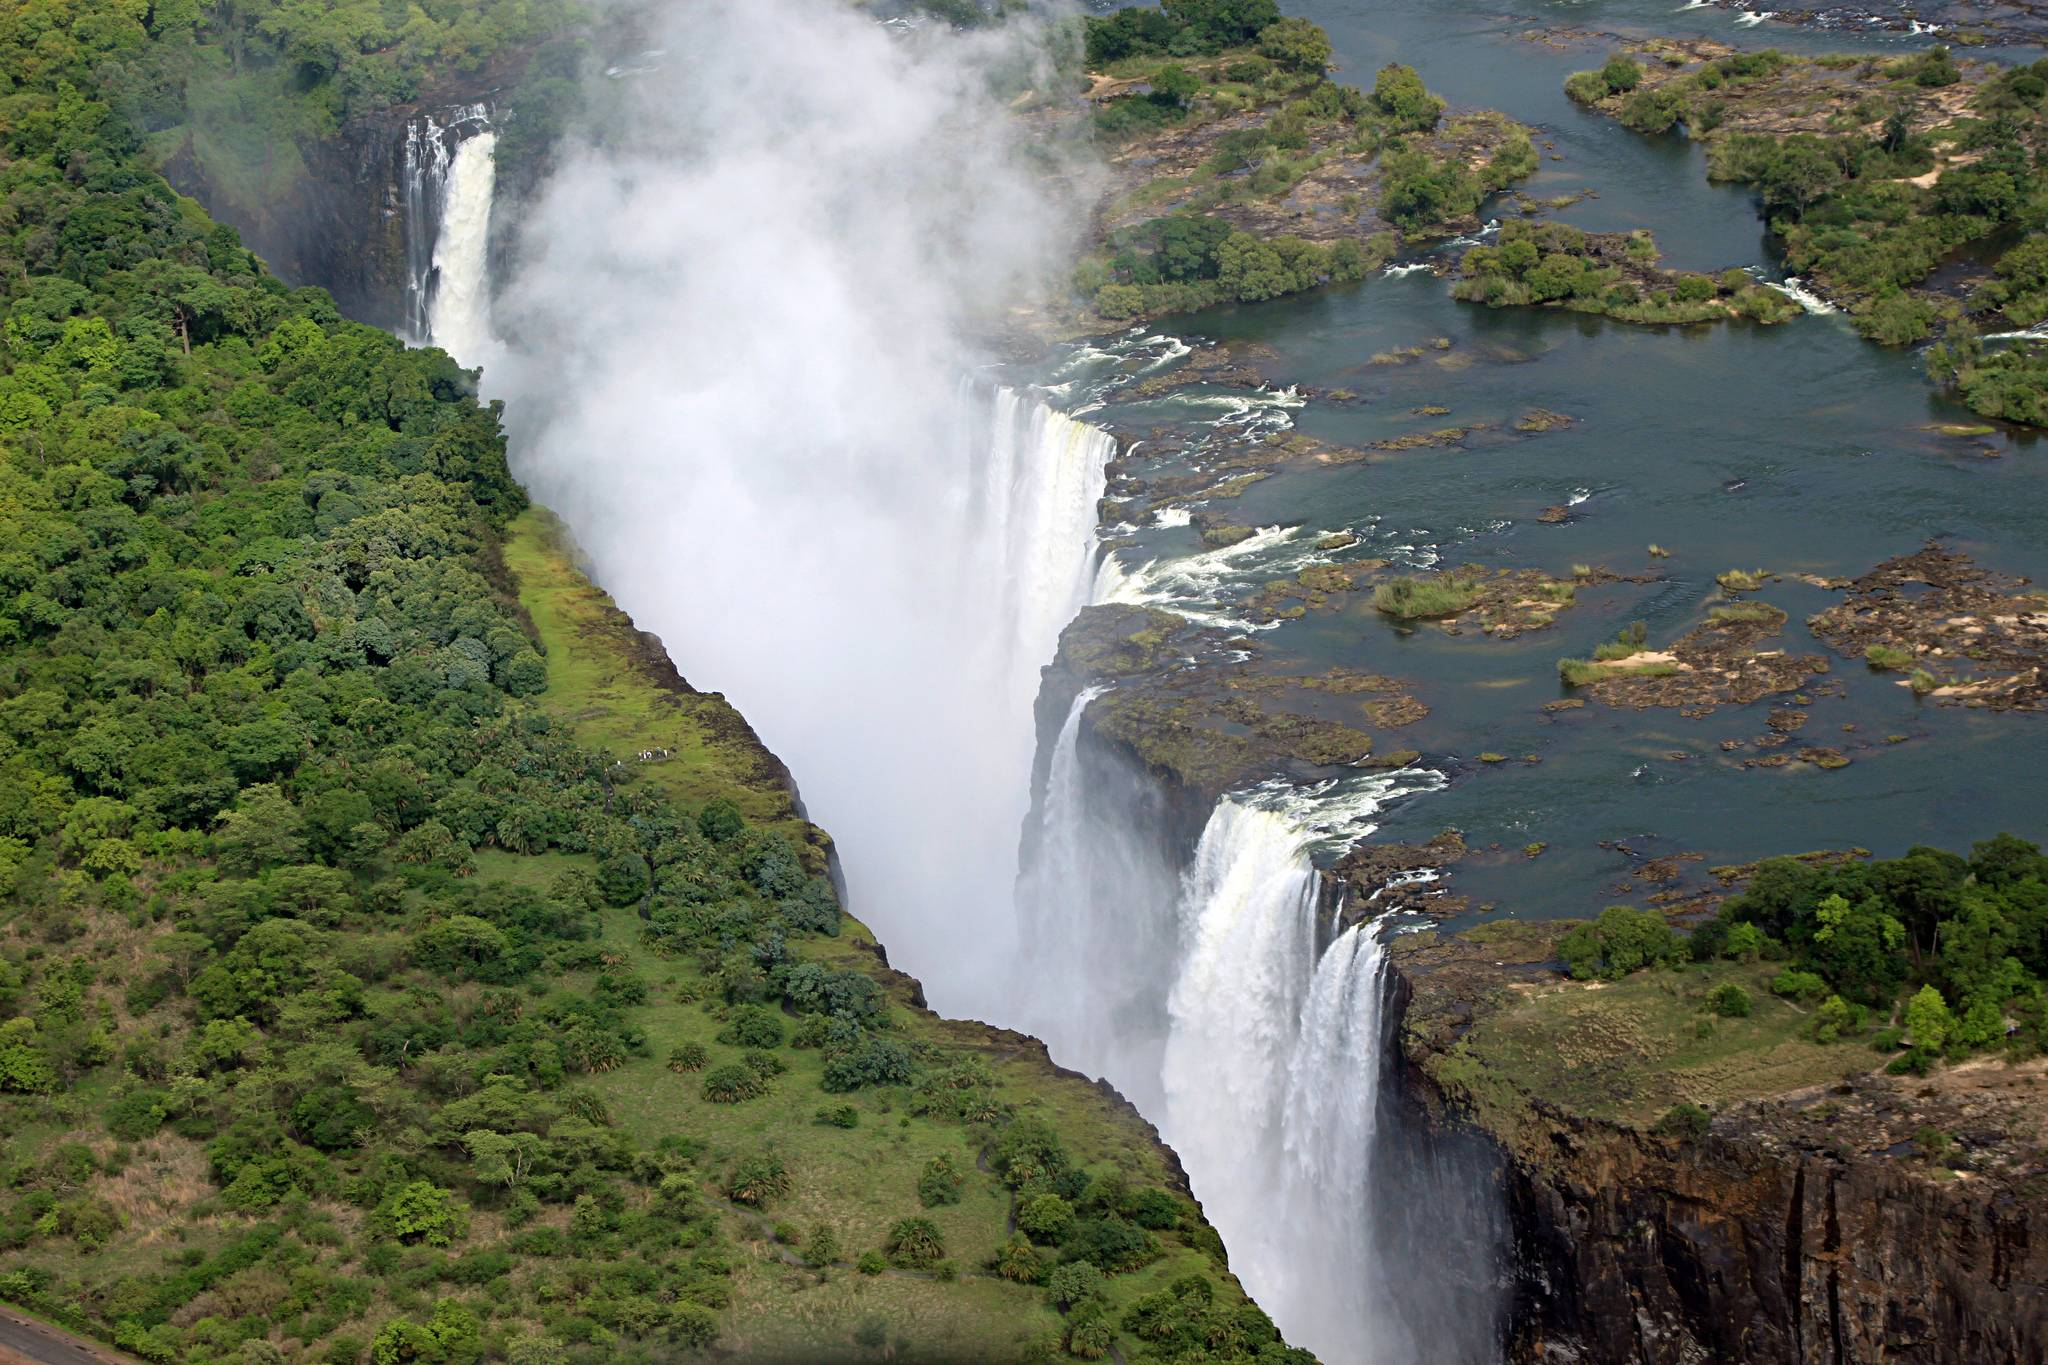 victoria falls The Largest Waterfall in the World   Victoria Falls